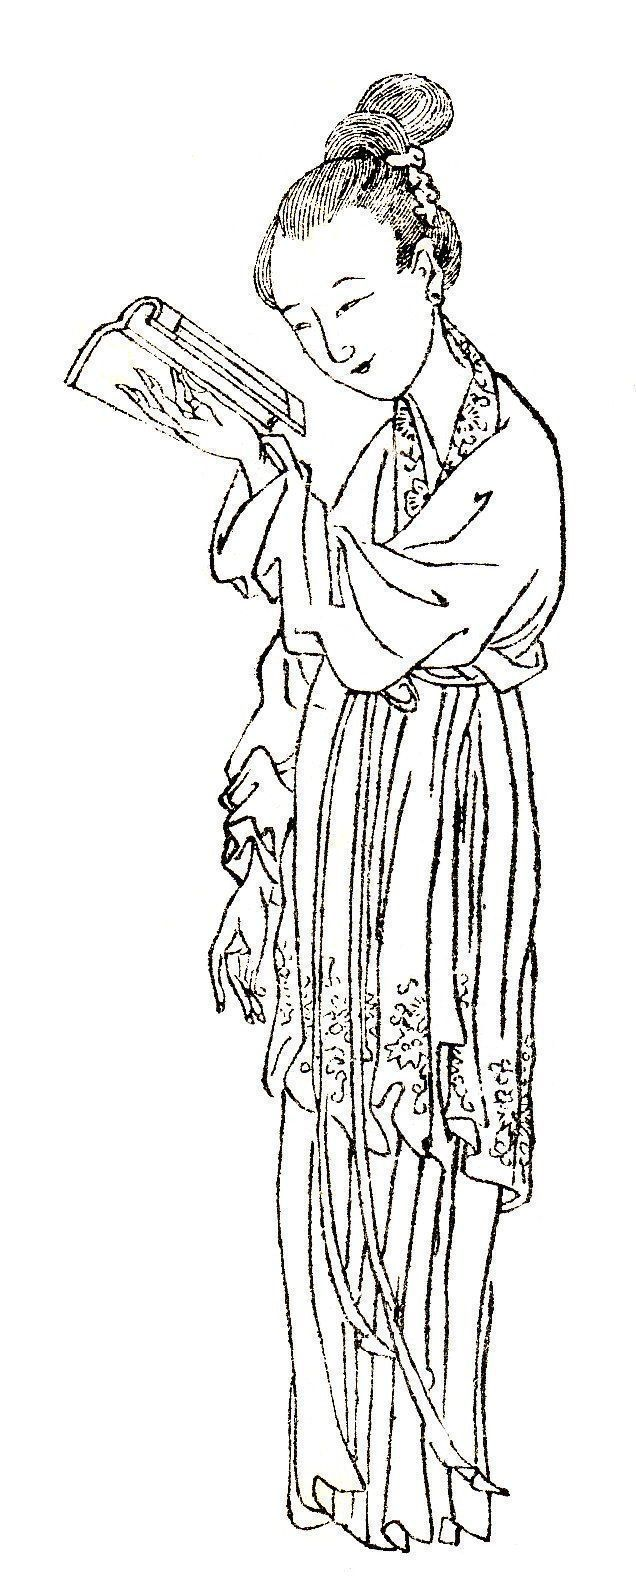 ban zhao and lessons women Throughout the chinese history, ban zhao is the first and the most highly esteemed female historian despite her education, accomplishments, and family background, she wrote the lessons for women advising women to be submissive to their husbands and teaching them the proper demeanors.